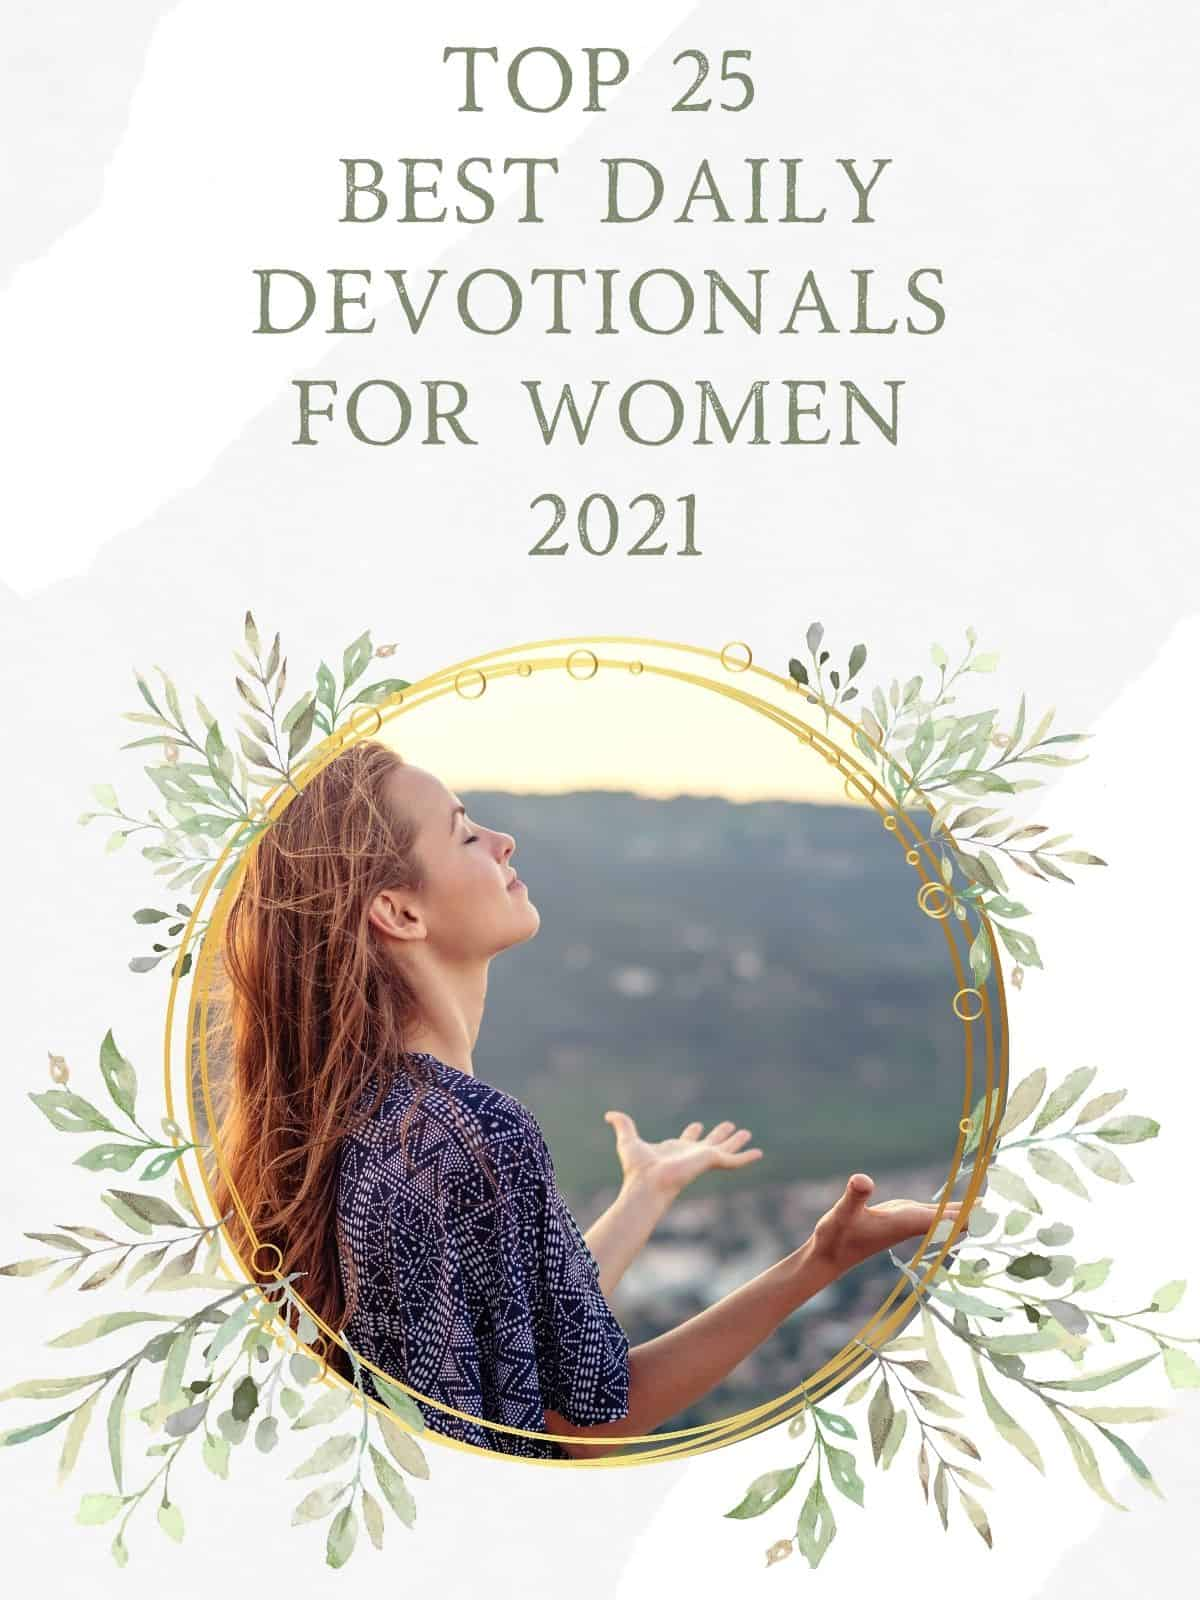 Top 25 Best Daily Devotionals For Women 2021 woman lifting hands